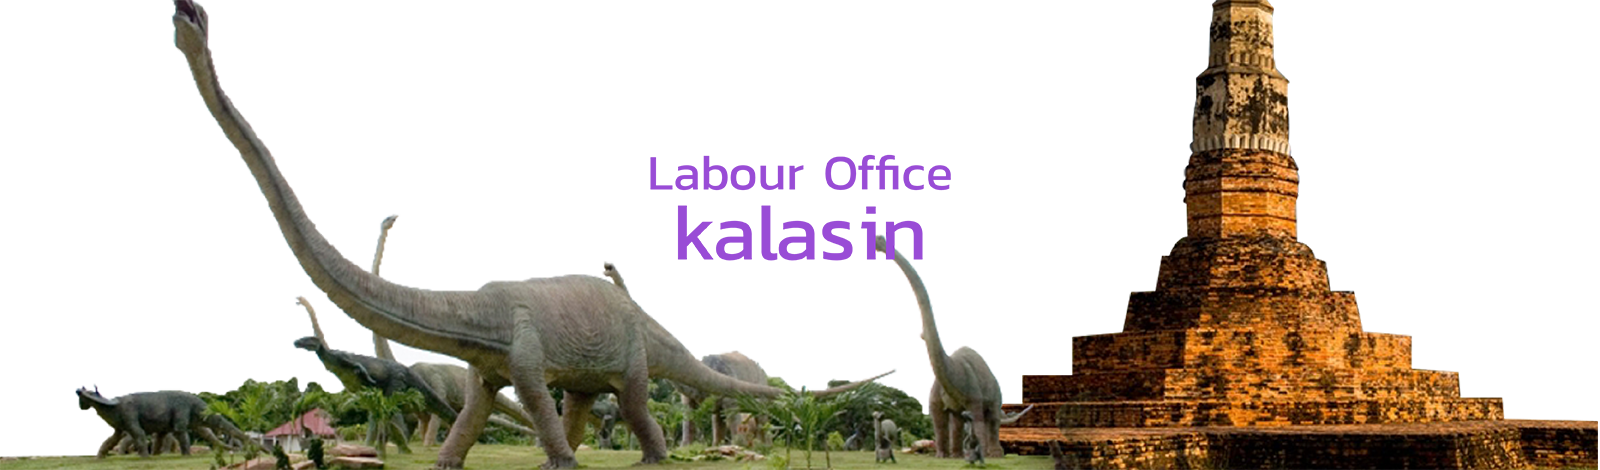 Provincial Labour Office Kalasin